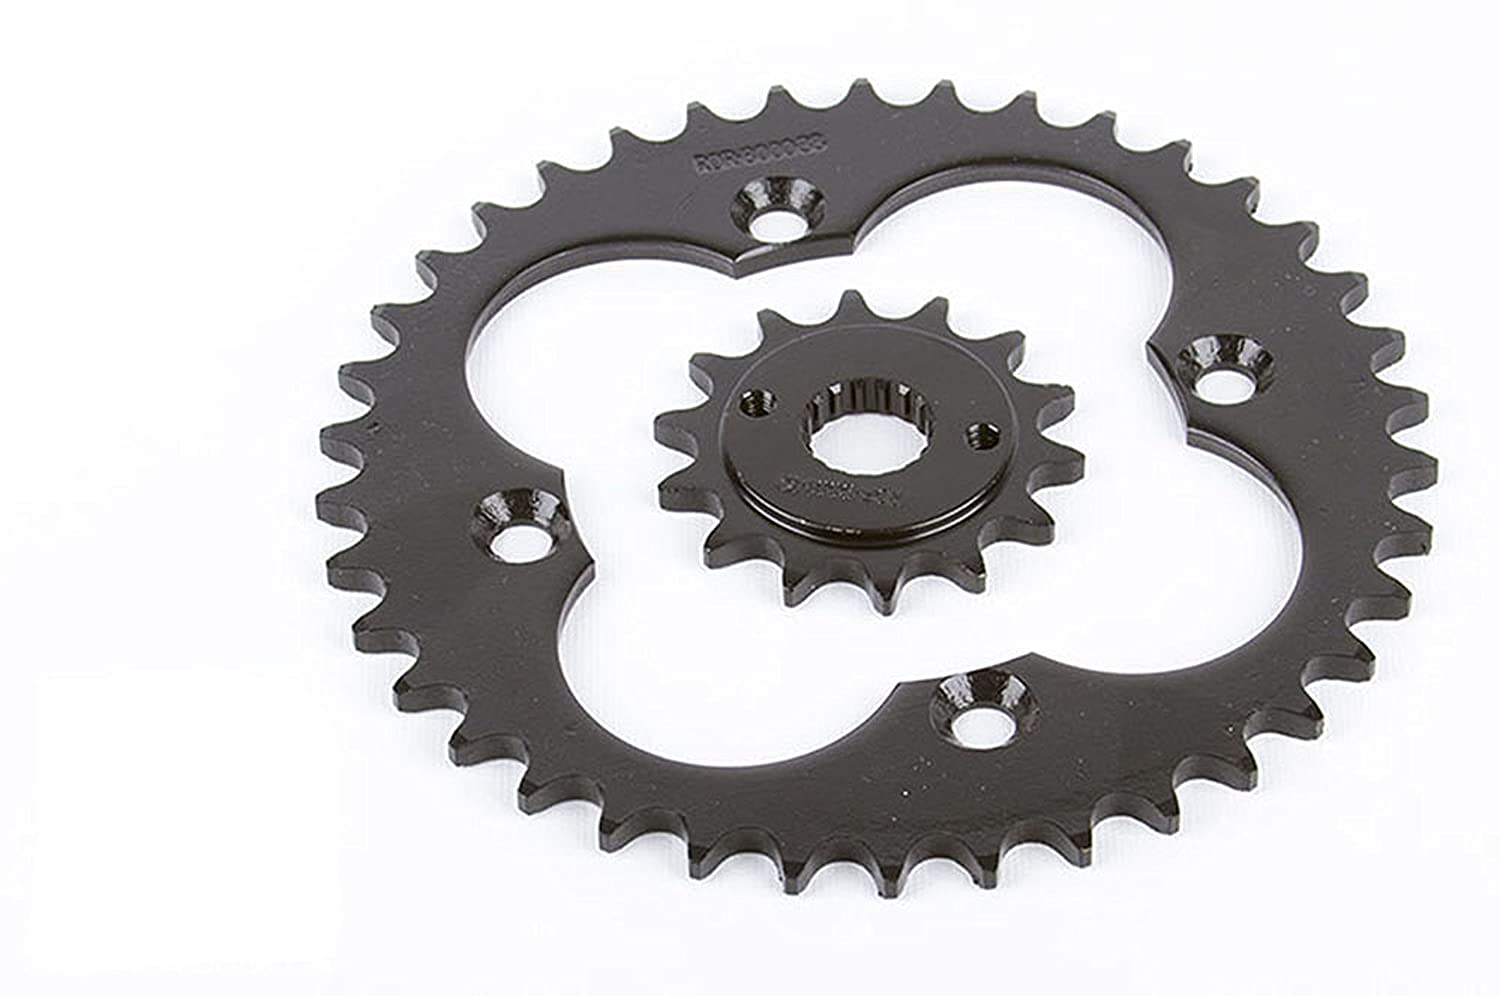 1999-2004 Honda TRX400EX 400EX 14 Tooth Front & 38 Tooth Rear Silver Sprocket Race-Driven